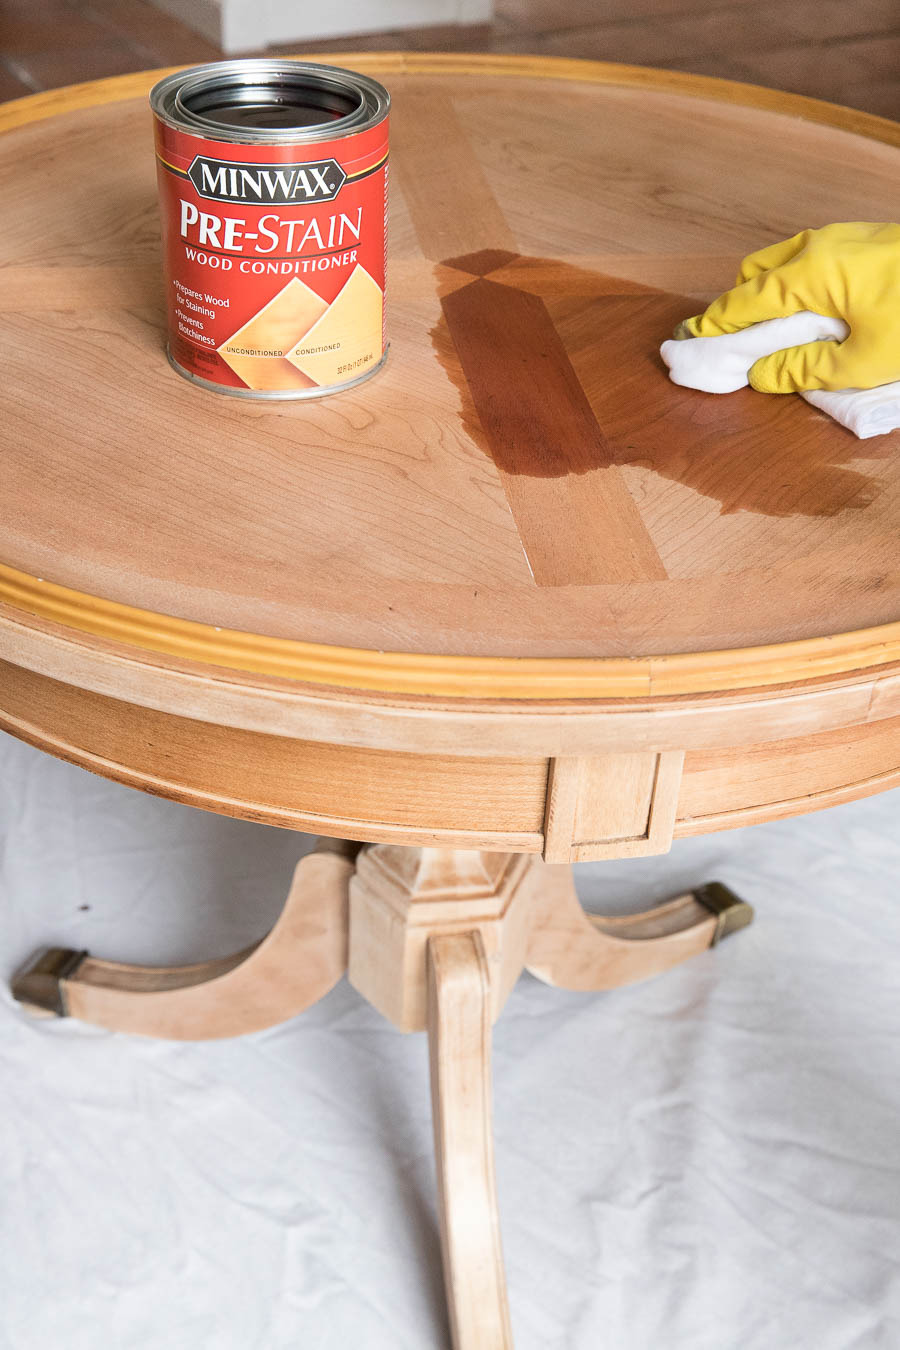 Refinishing Antique Wood Furniture Lovely Refinishing A Table How I Brought My Beat Up End Table Back